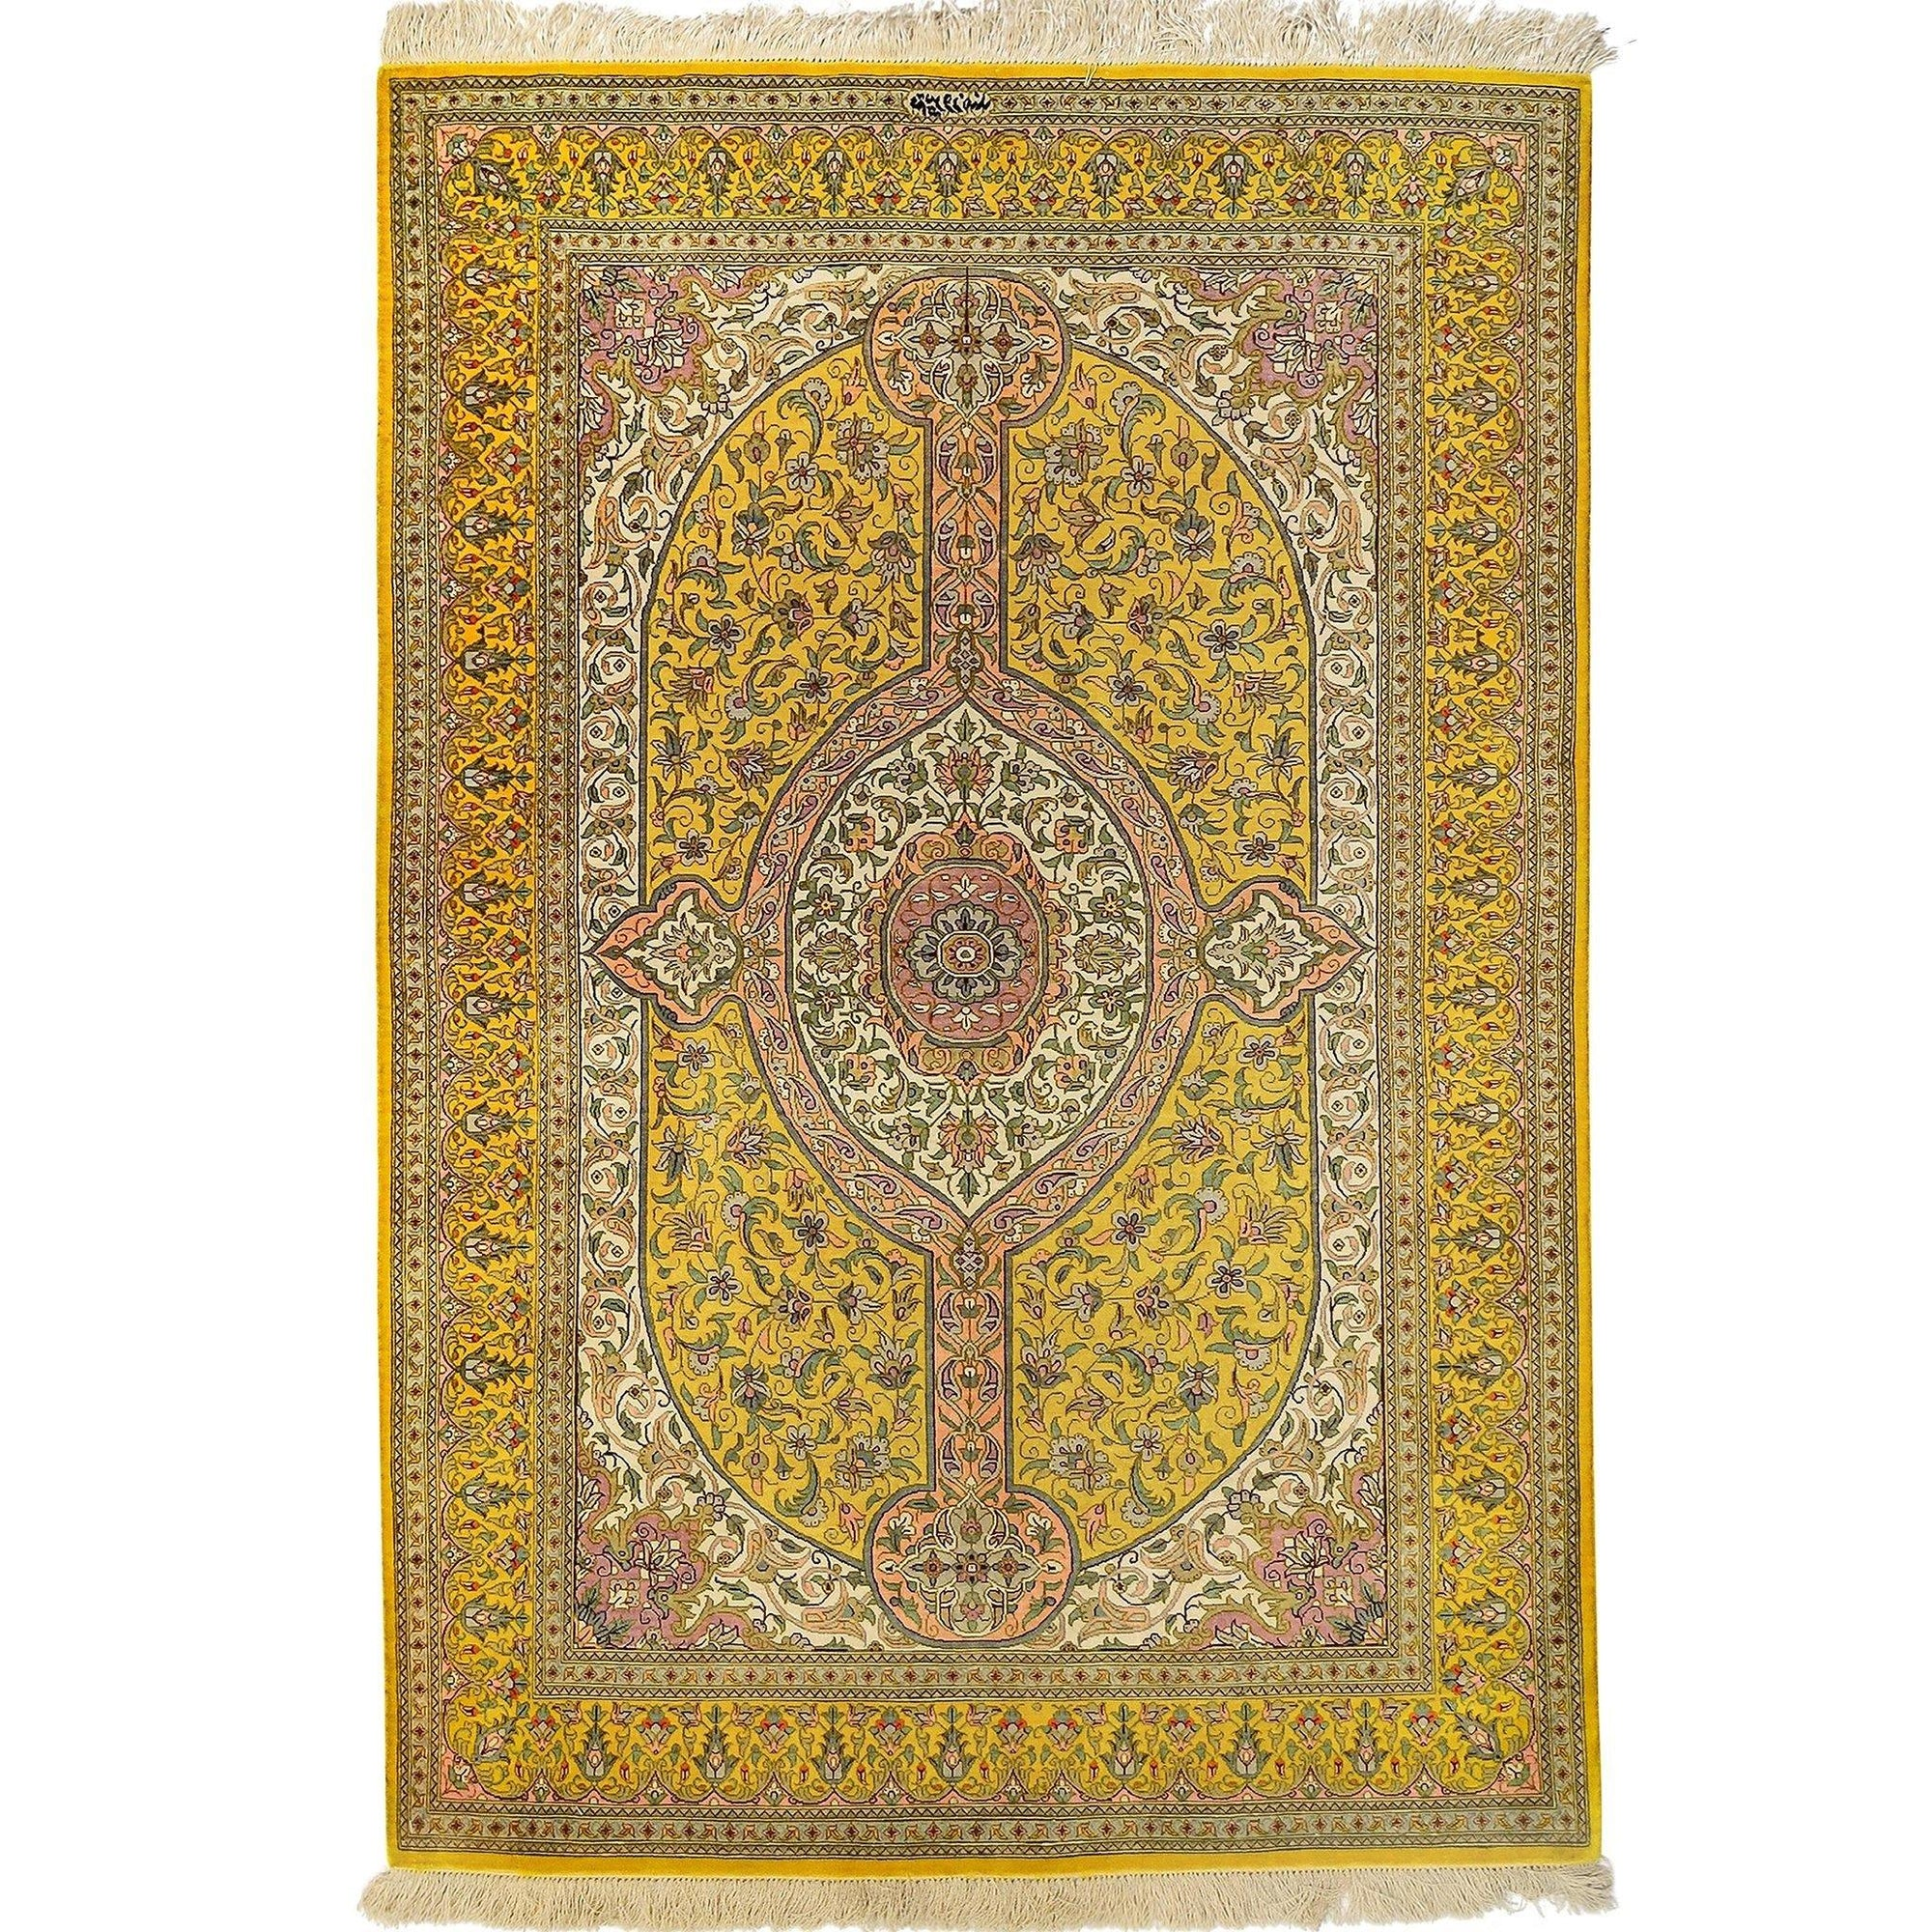 Fine Hand-knotted Persian Qom/Qum Silk Rug (Signed By Master Weaver)   100cm x 150cm Persian-Rug | House-of-Haghi | NewMarket | Auckland | NZ | Handmade Persian Rugs | Hand Knotted Persian Rugs